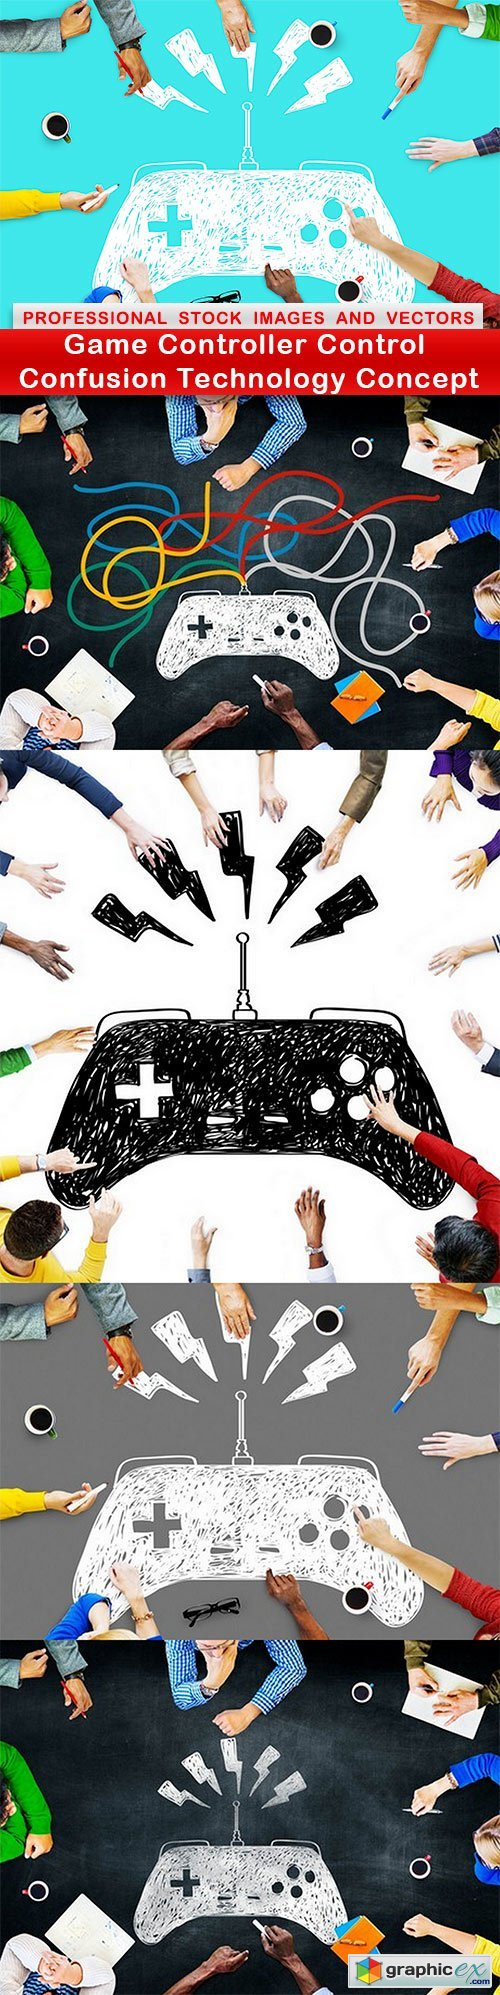 Game Controller Control Confusion Technology Concept - 5 UHQ JPEG